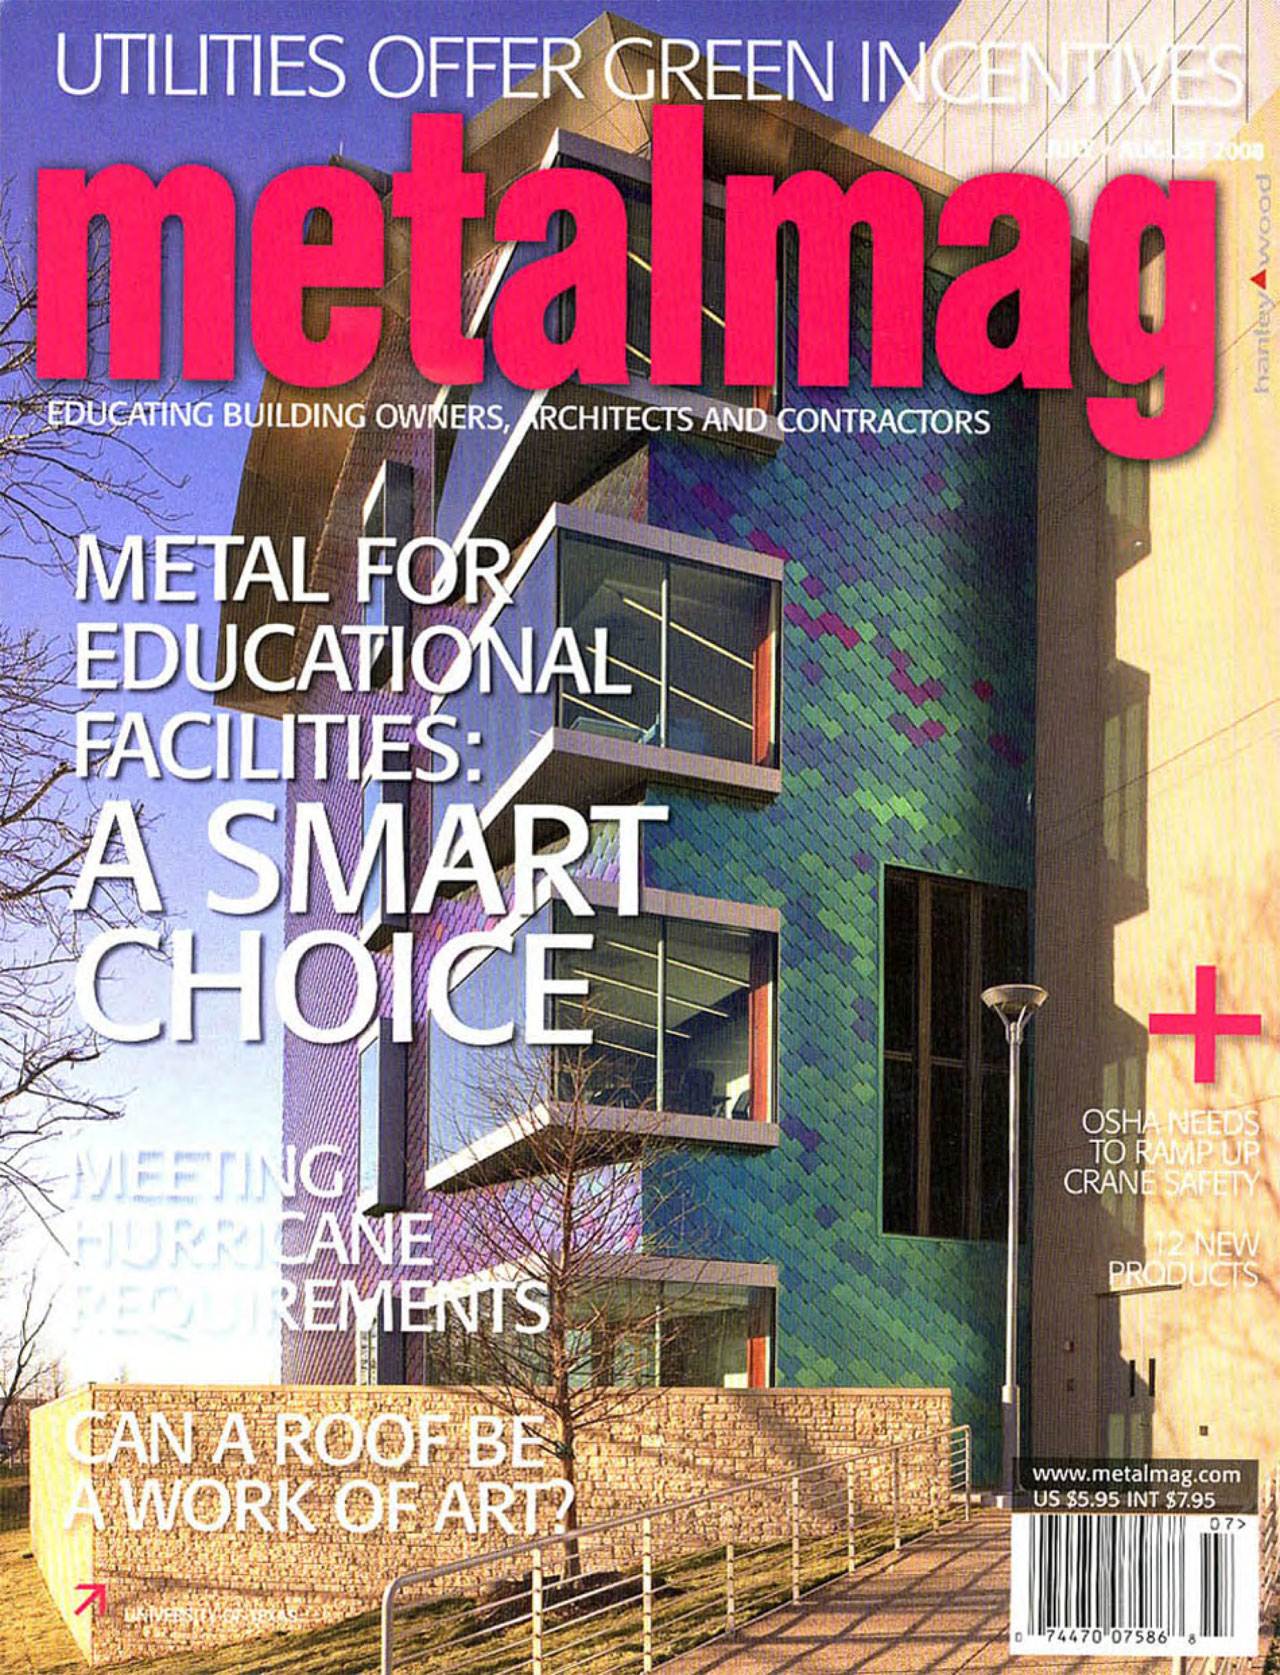 02_News_Metal-Magazine-Whalerock-Lane-01_web_w1280